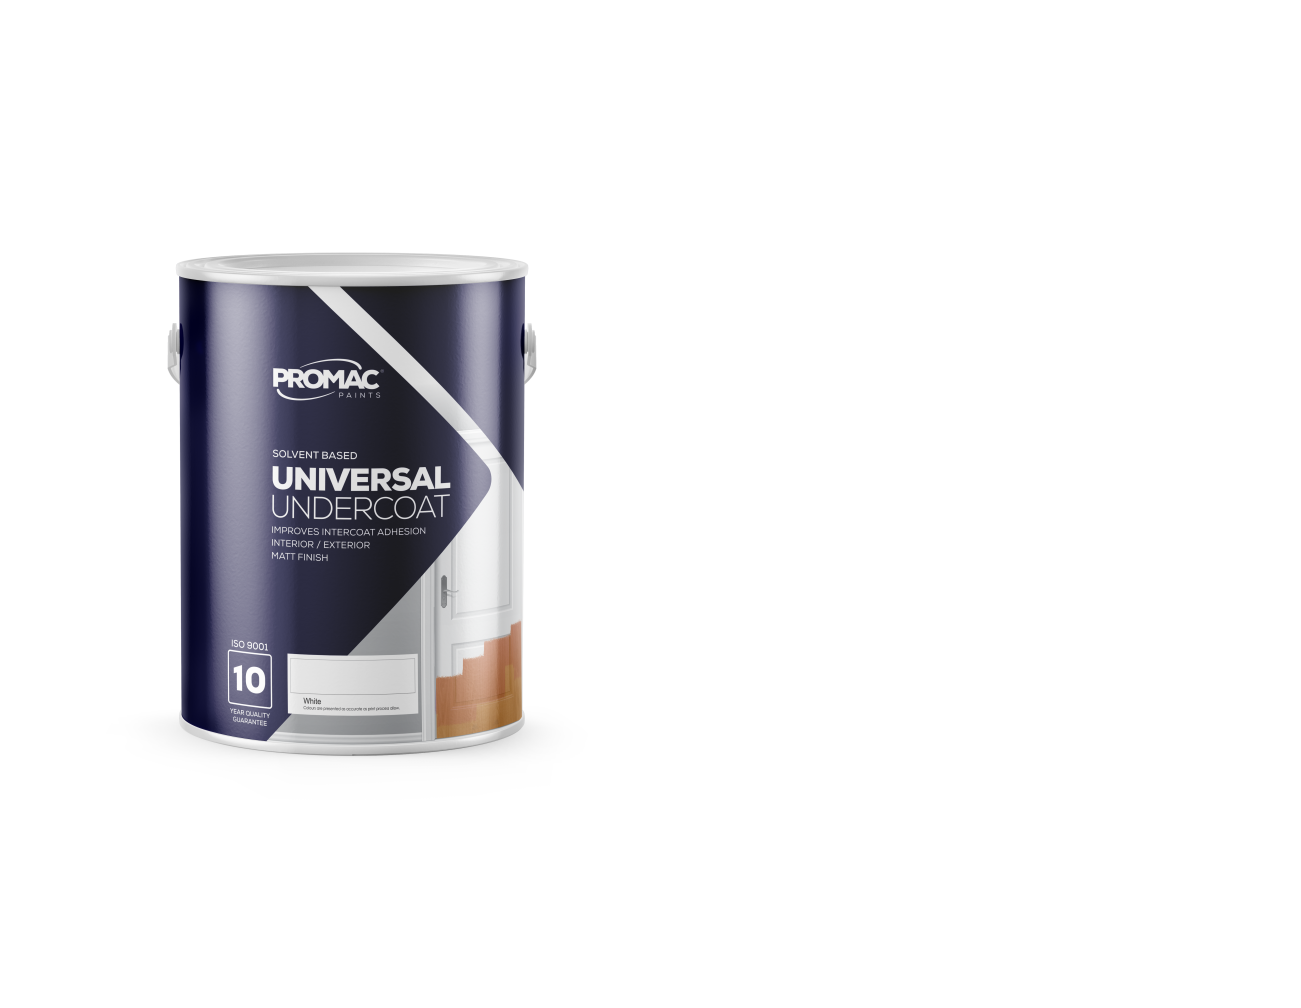 UNIVERSAL UNDERCOAT - SOLVENT BASEDPromac Universal Undercoat is an alkyd-solvent based high quality pigmented matt undercoat which has excellent adhesion, flow and ease of sanding for interior / exterior areas. It is meant for application to both primed new work and sound previously painted areas.